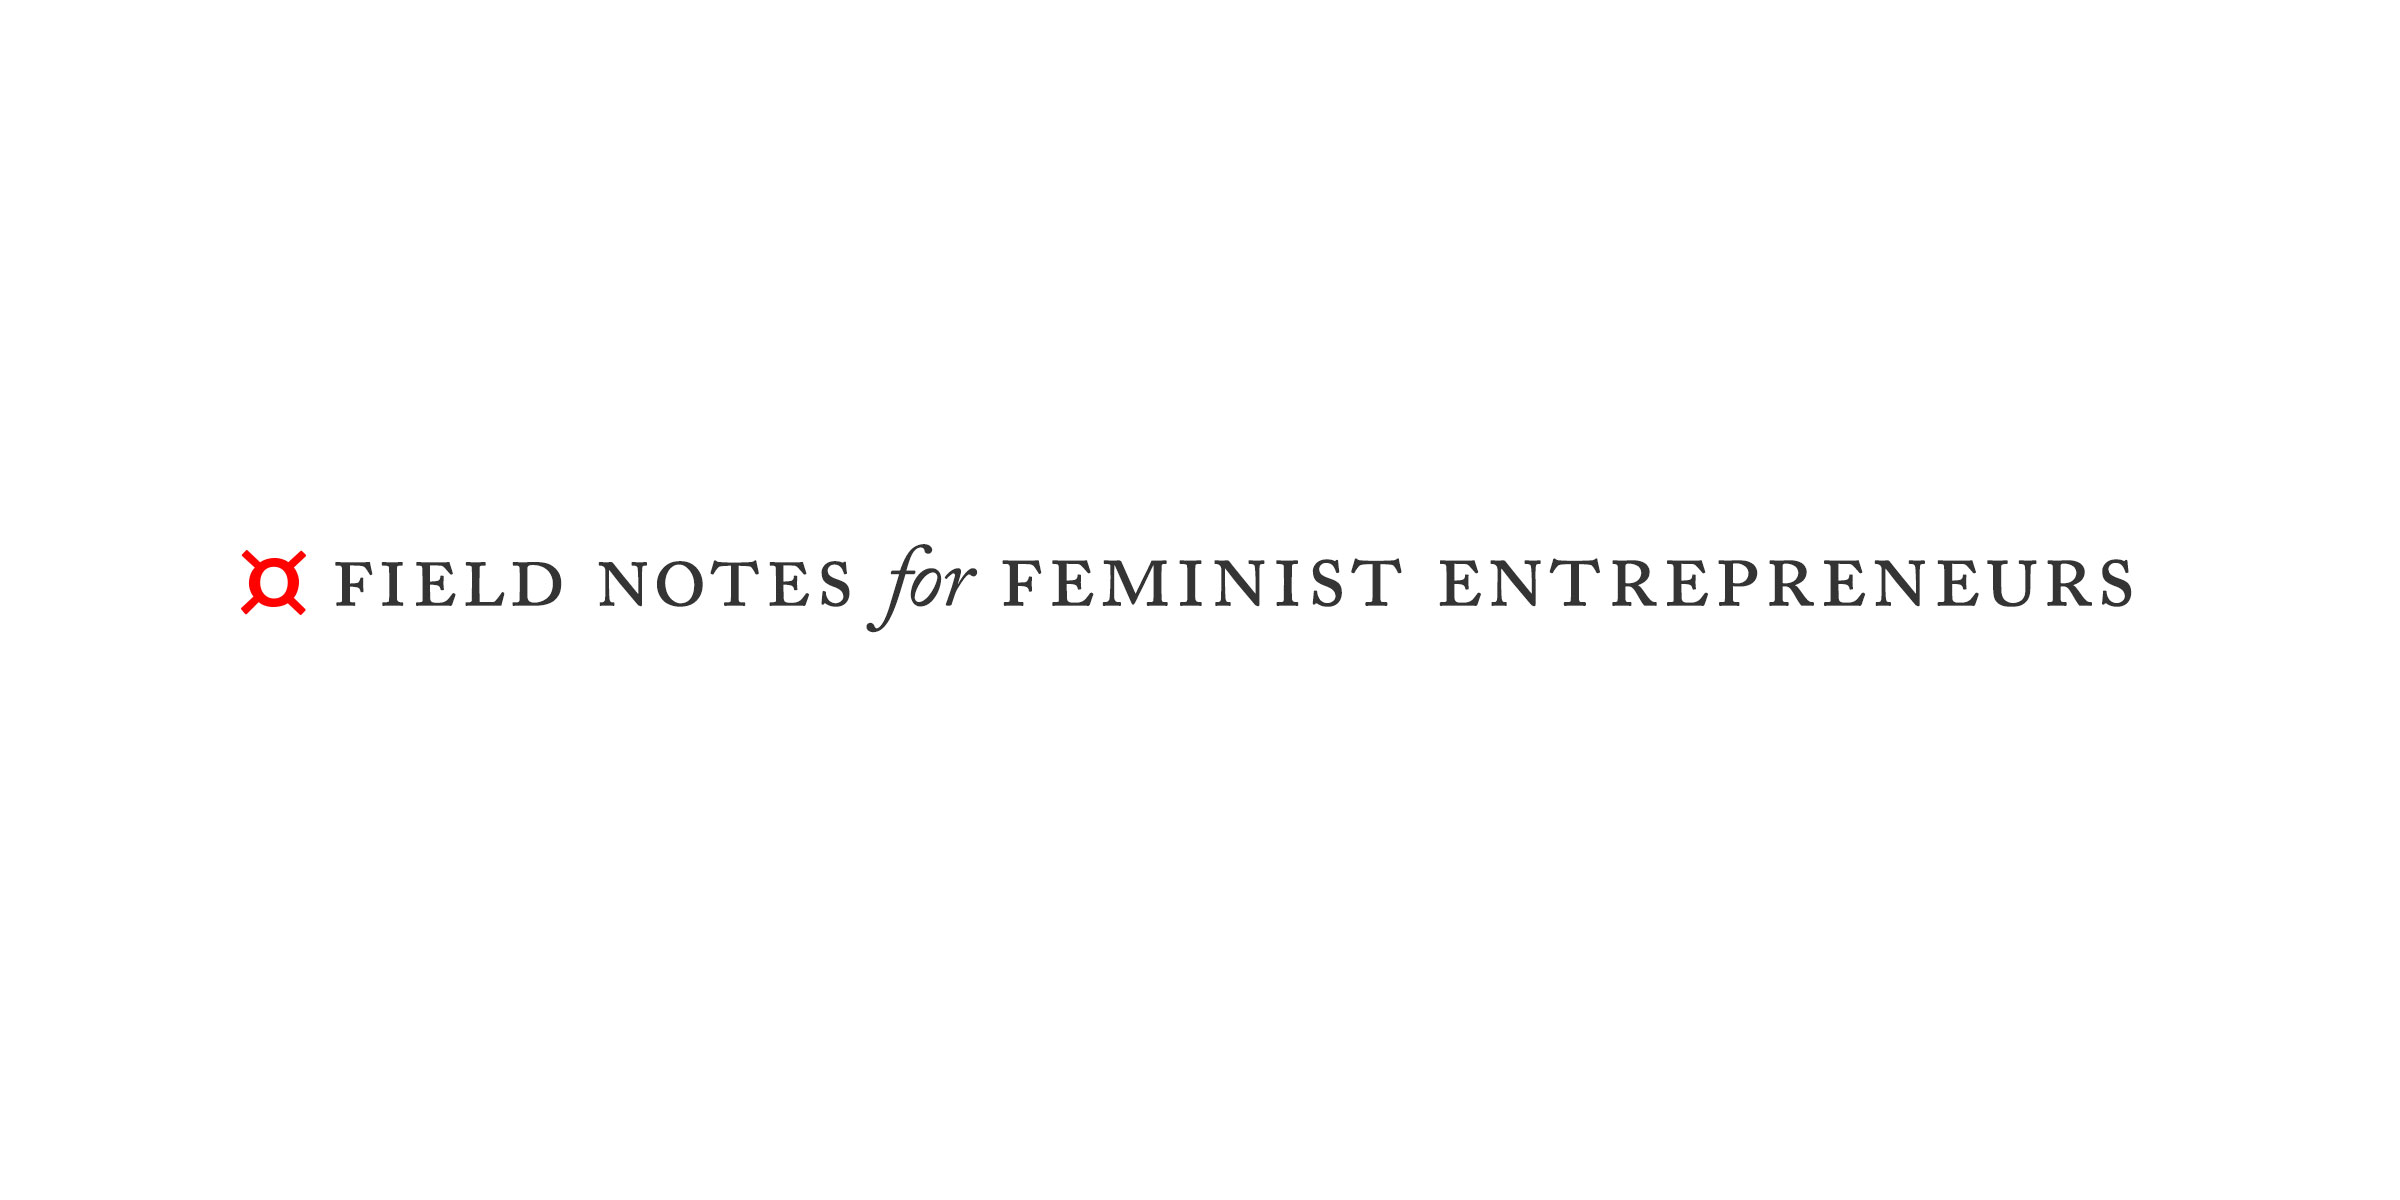 field-notes-for-feminist-entrepreneurs-business-webzine-wordpress-theme-website-design